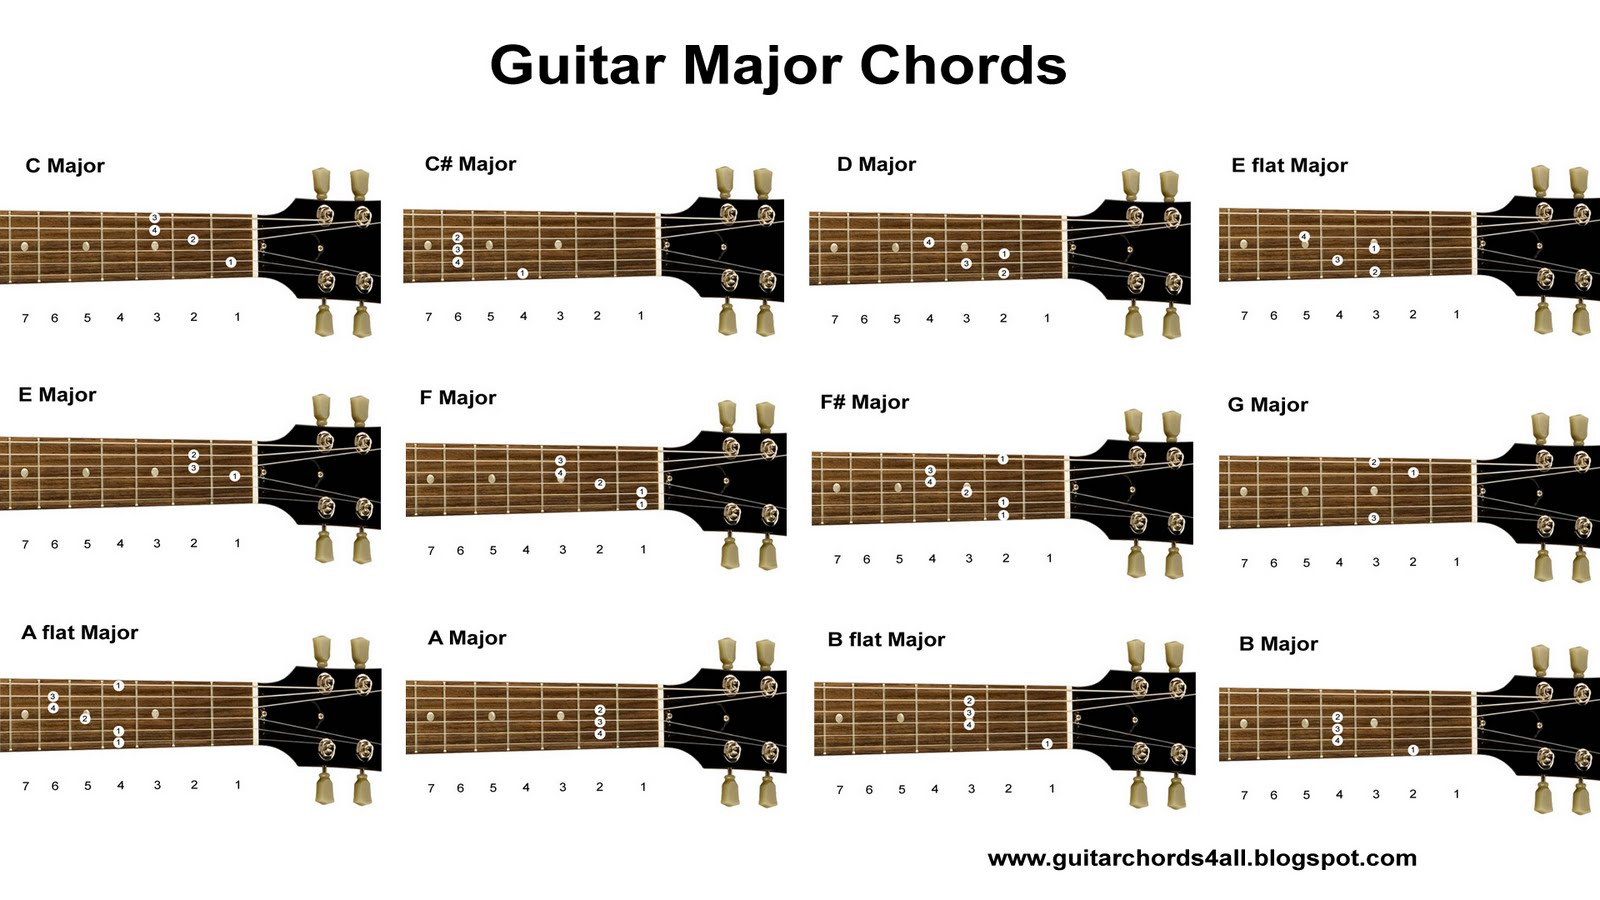 https://racquelyn.files.wordpress.com/2015/03/guitar-chords-wallpaper.jpg